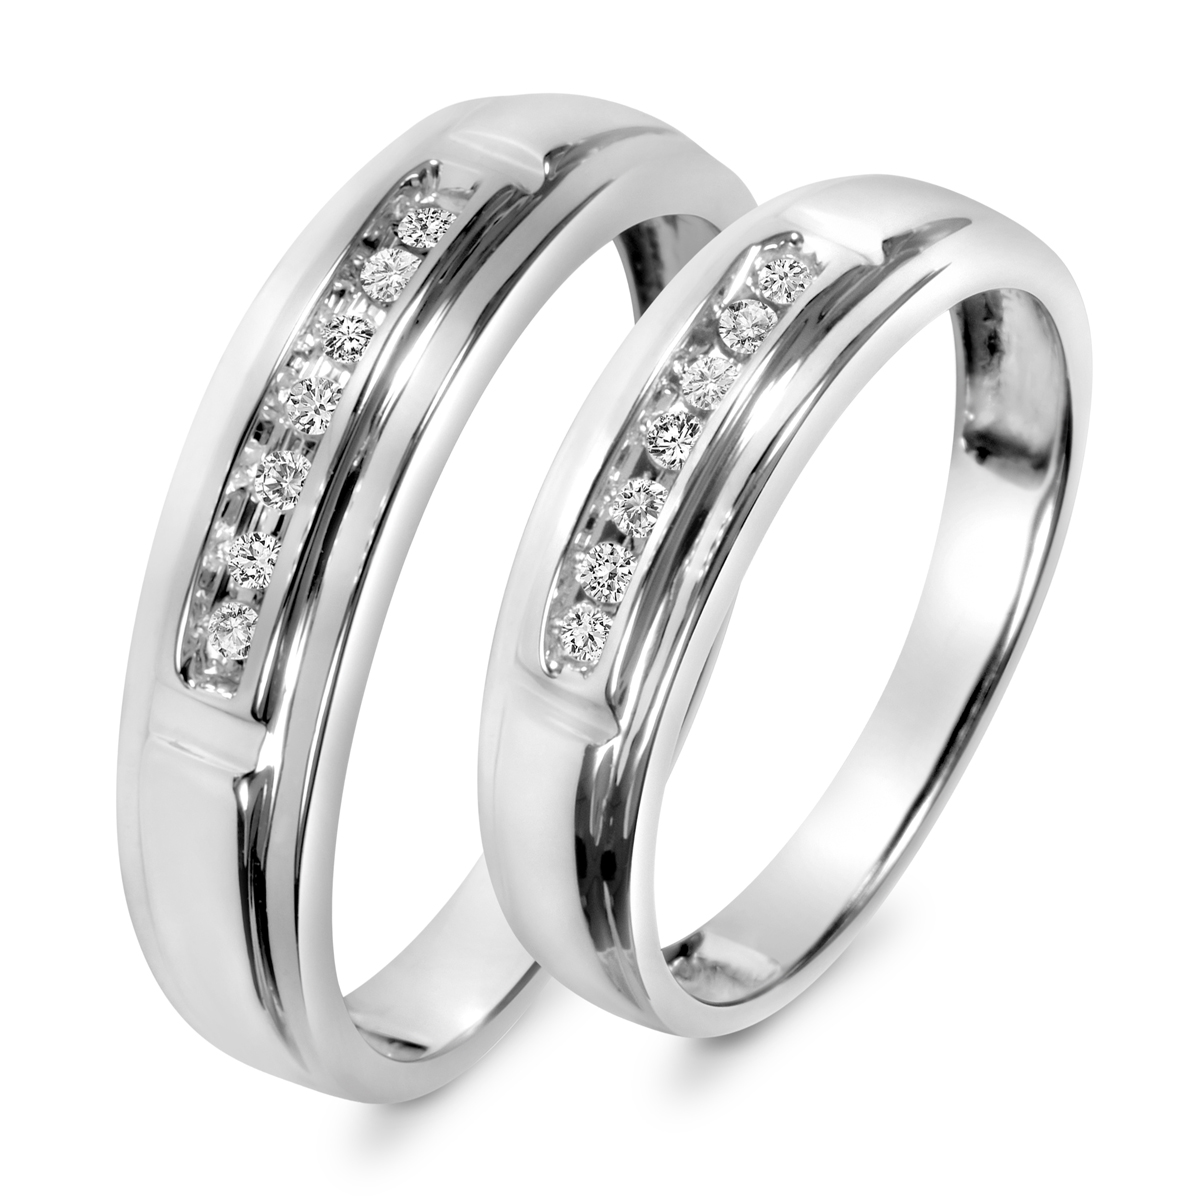 of matching dress his best lovely rings we and wedding hers ring